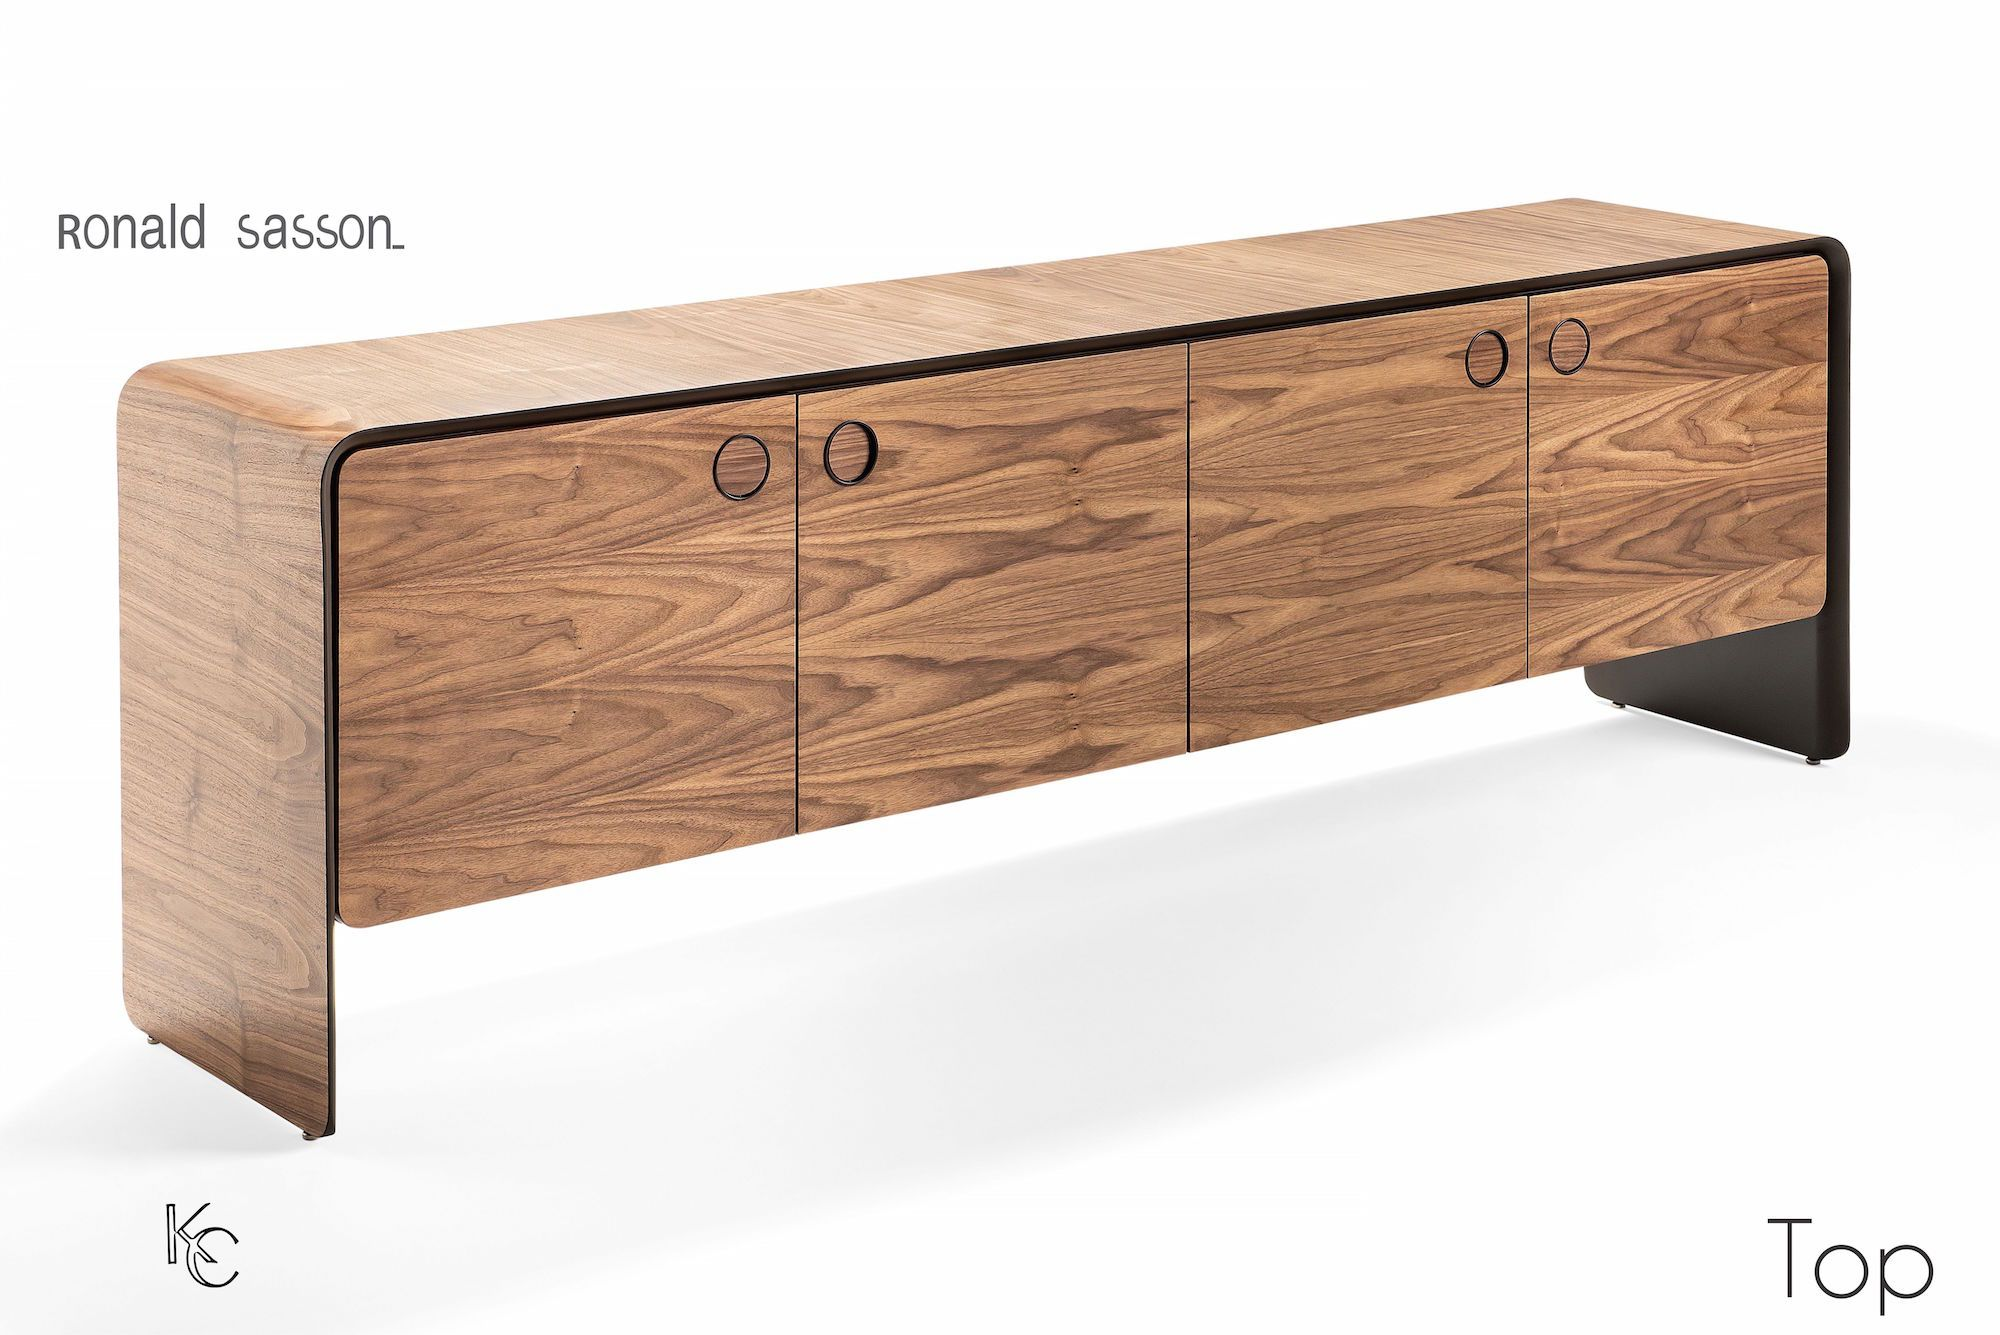 Top sideboard/credenza by Ronald Scliar Sasson - Kelly Christian Designs